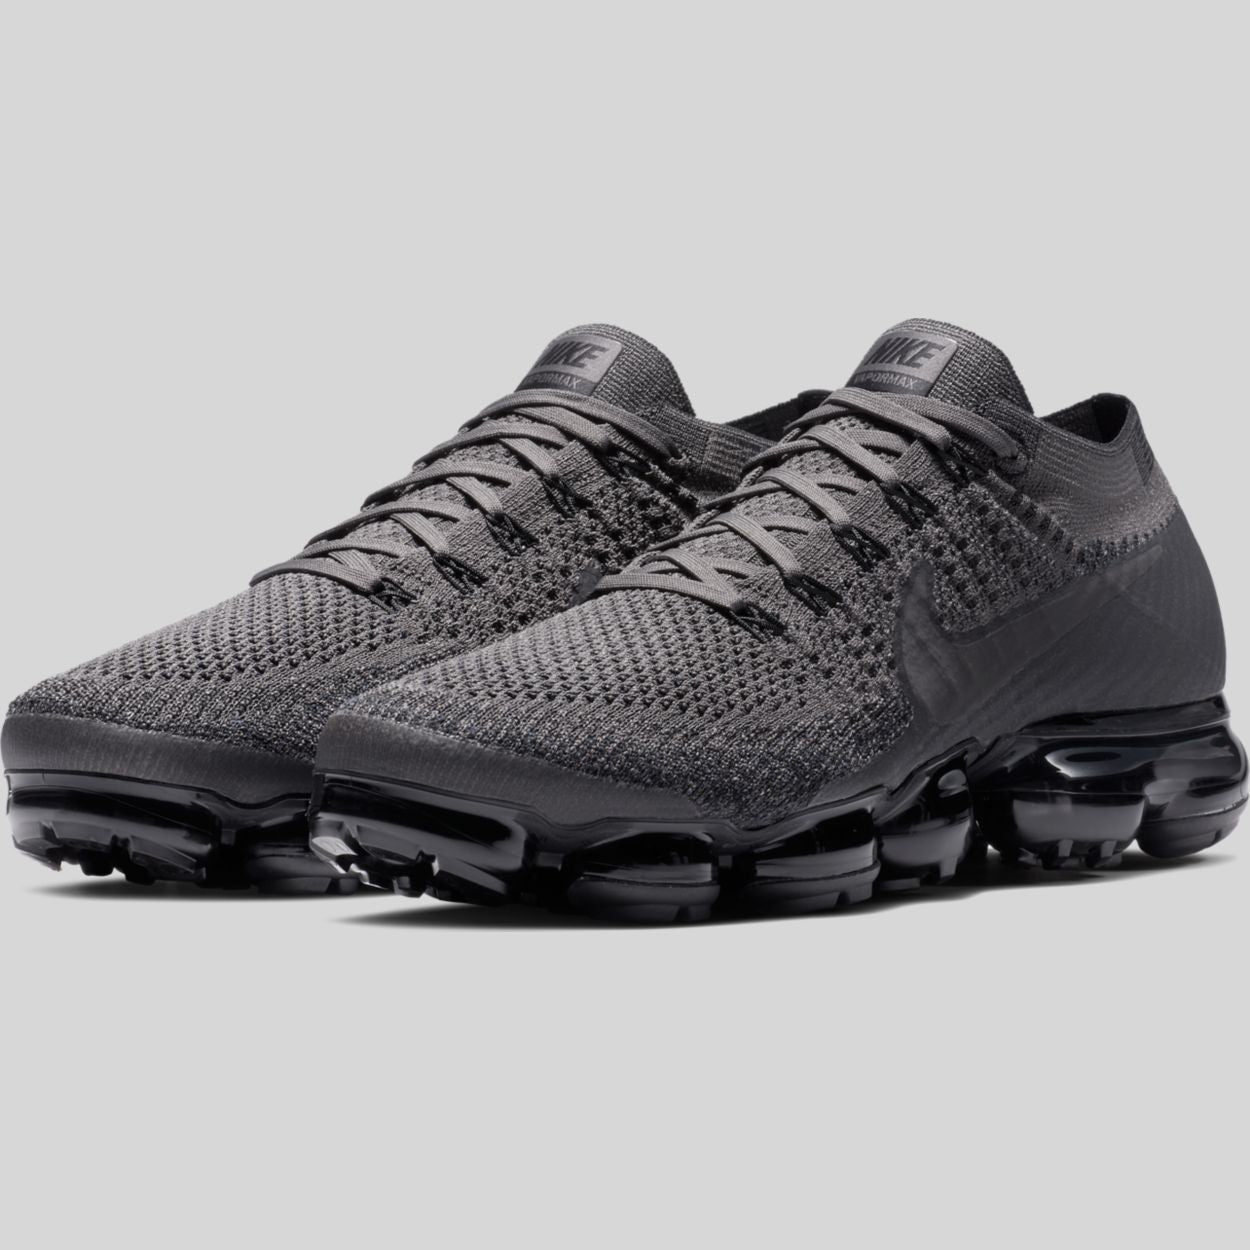 Nike AIR VAPORMAX FLYKNIT Midnight Fog Multi-Color-Black (849558-009 ... 74b1debb6